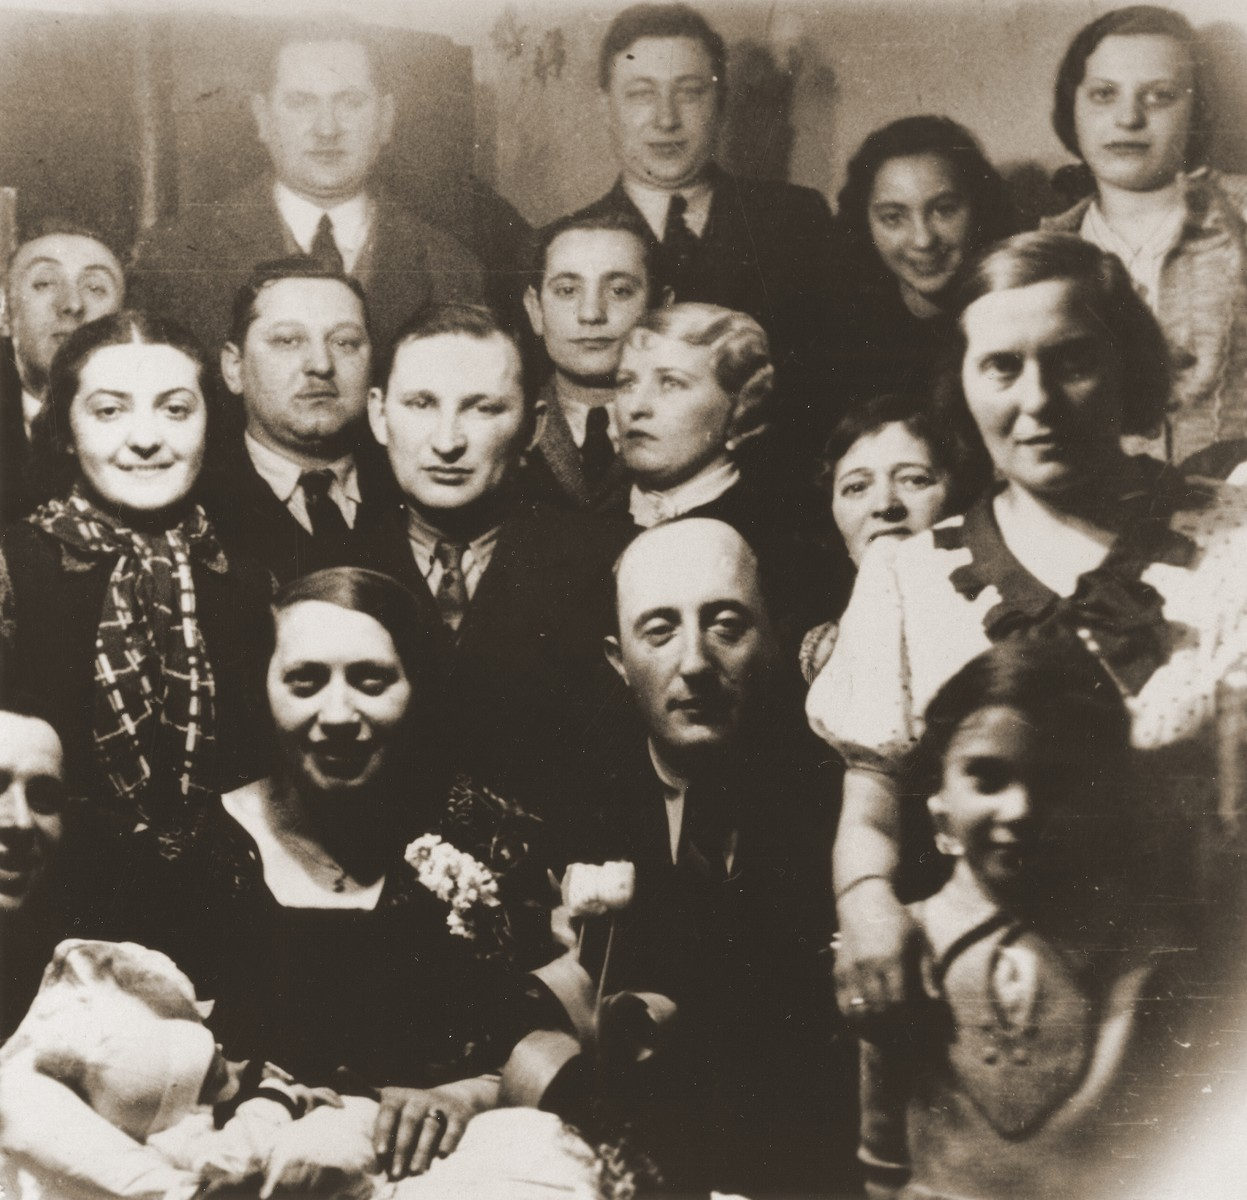 Group portrait of members of the extended Broda family at a gathering to celebrate the birth of the son of Aron and Sheindel Broda in Katowice.  Among those pictured are Aron and Sheindel Broda (front row, center), Tola and Salusia Goldblum (right) and Nacha Broda.